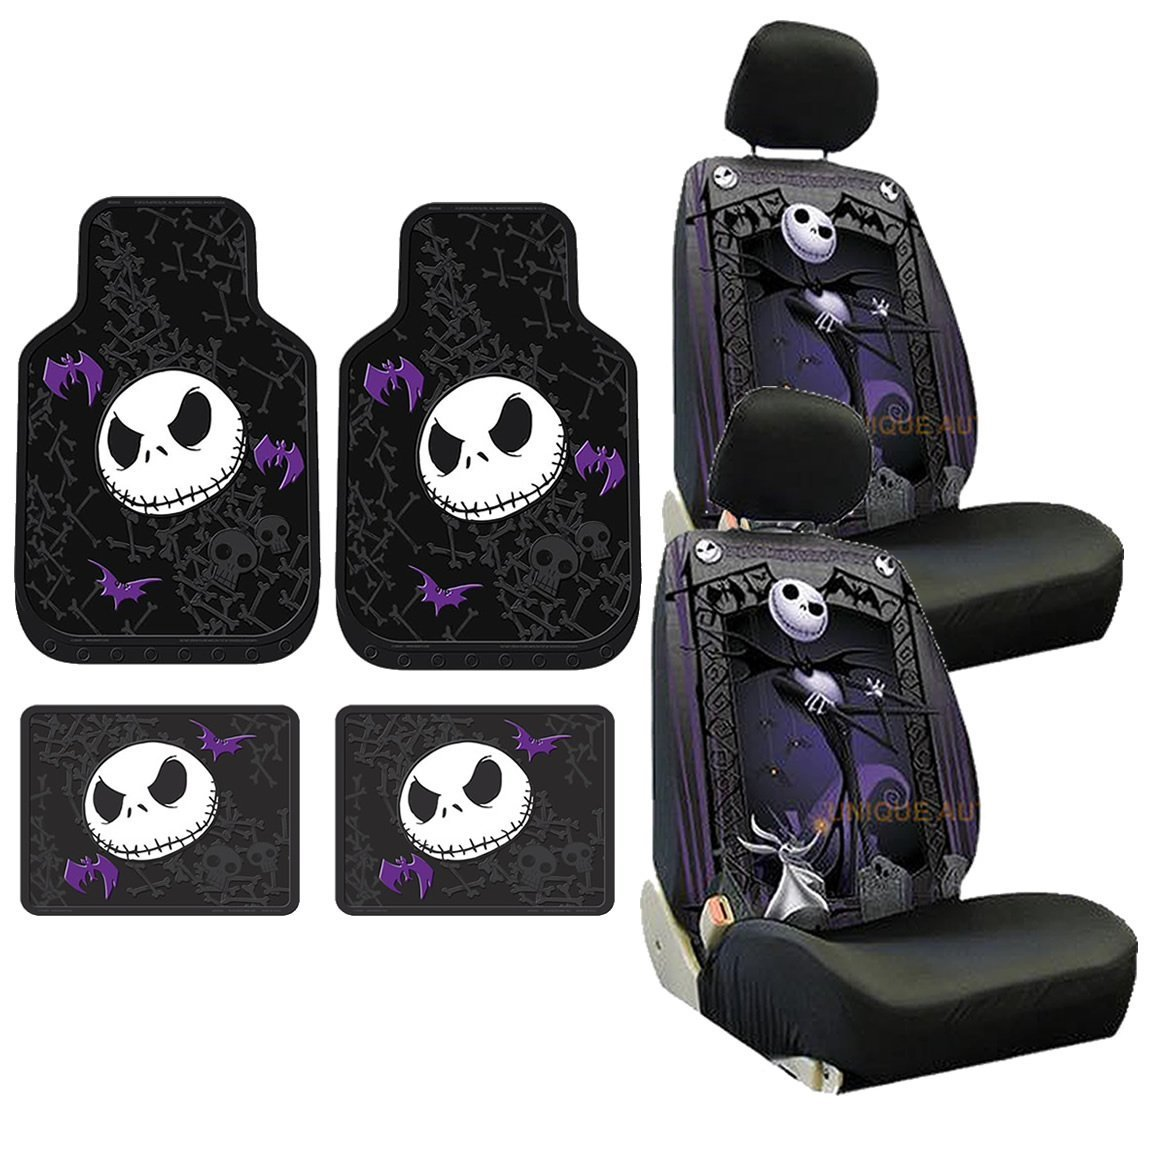 Amazon.com: 8pc Nightmare Before Christmas Jack Skellington Seat ...